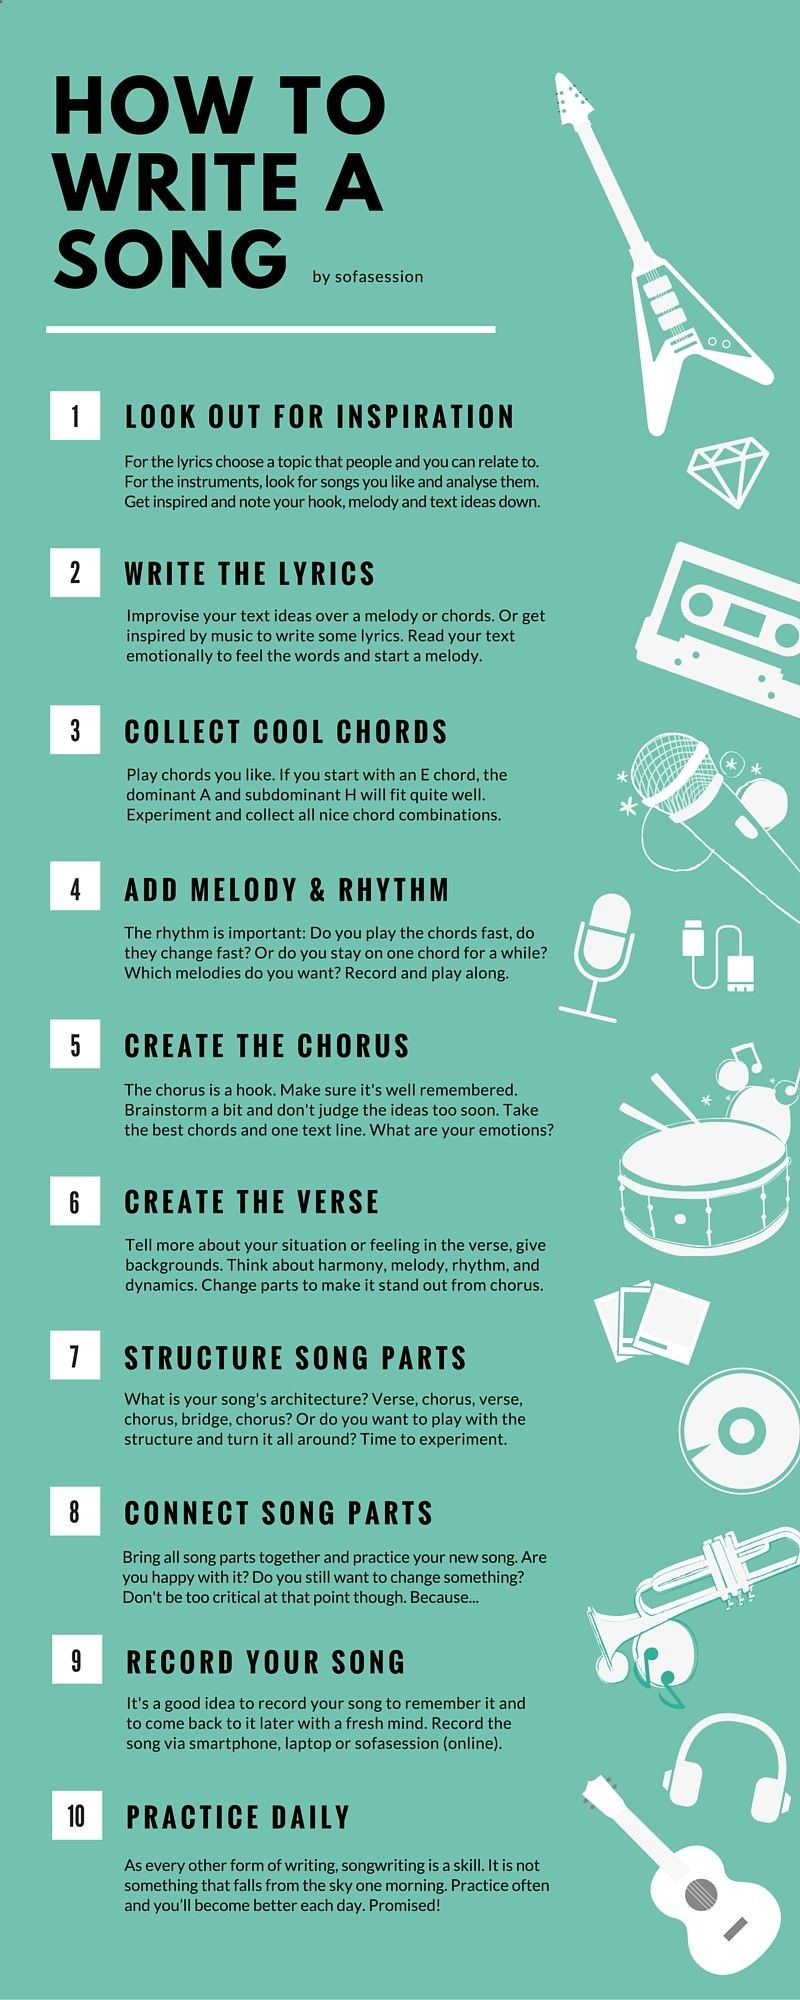 How To Write A Song In 10 Steps As A Beginner The Infographic Shows